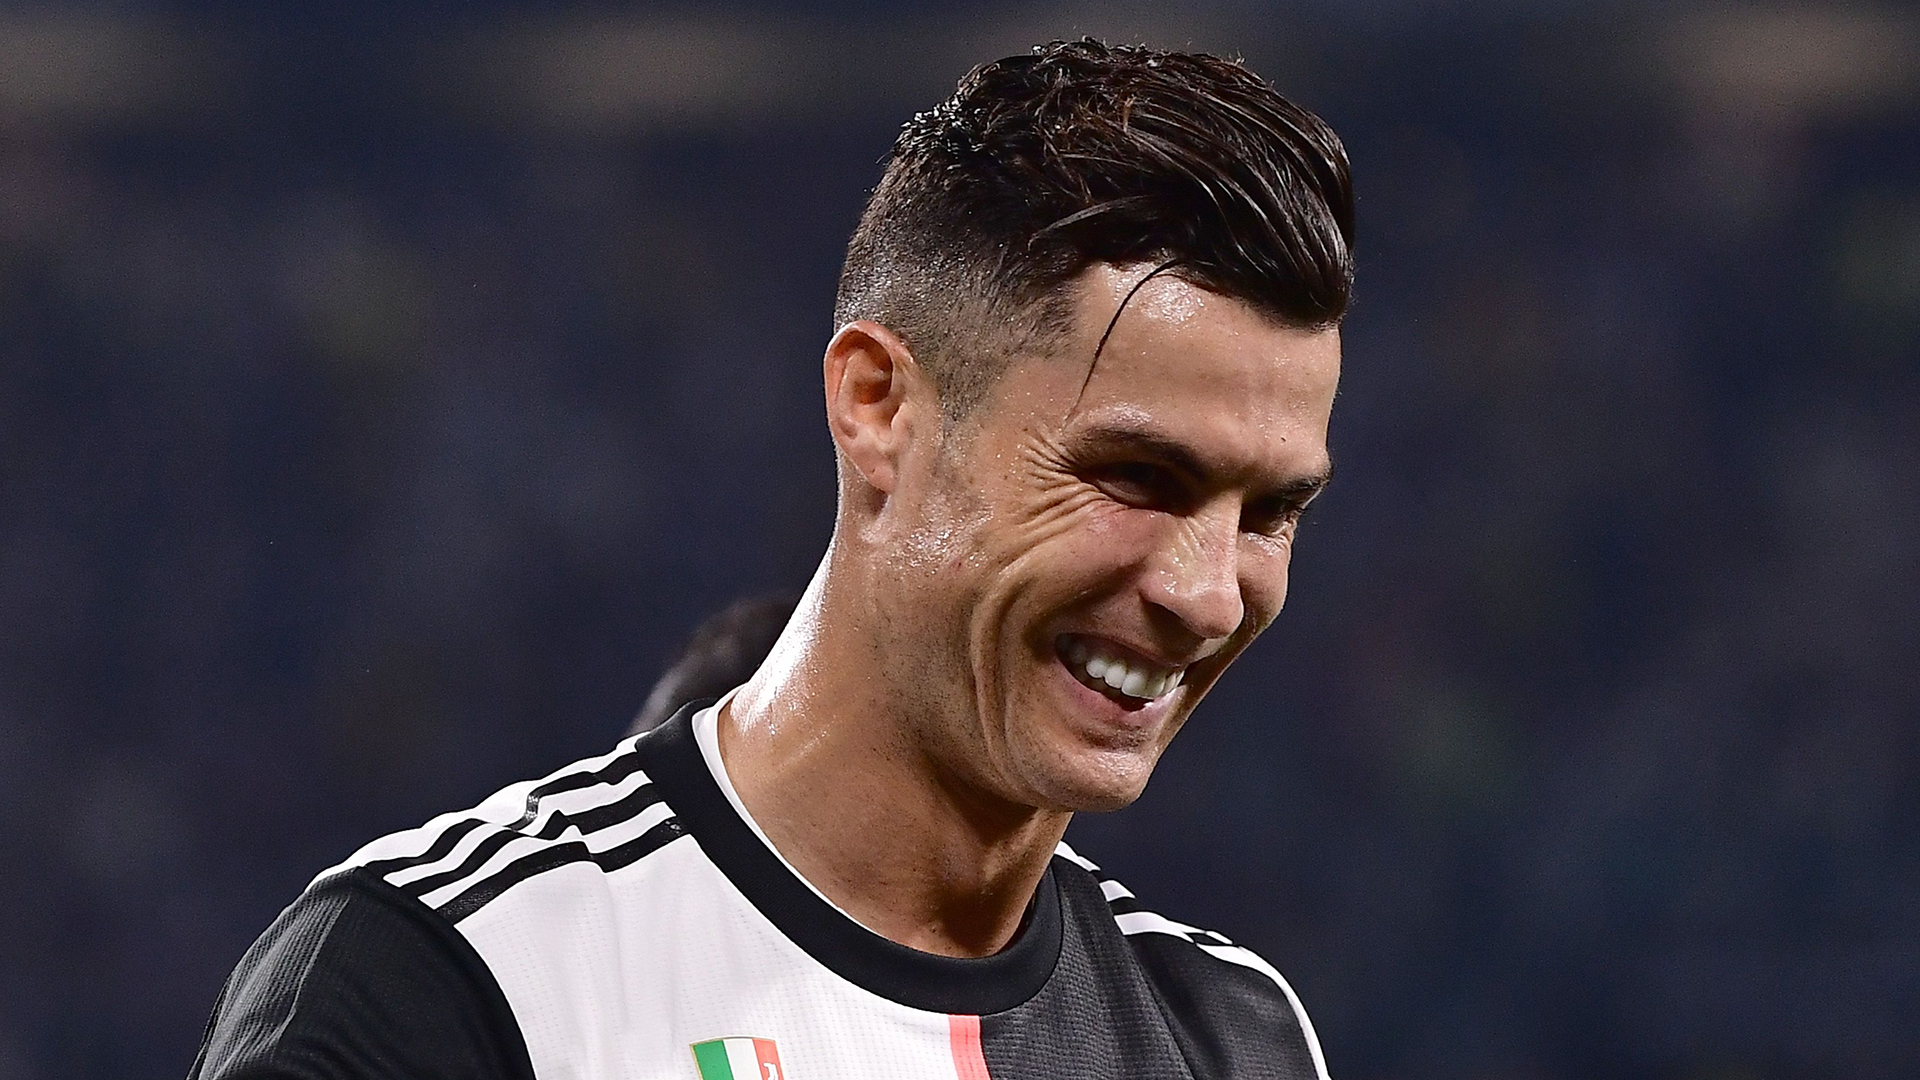 Ronaldo's €31m per year Juventus wages still three times more than any other Serie A player